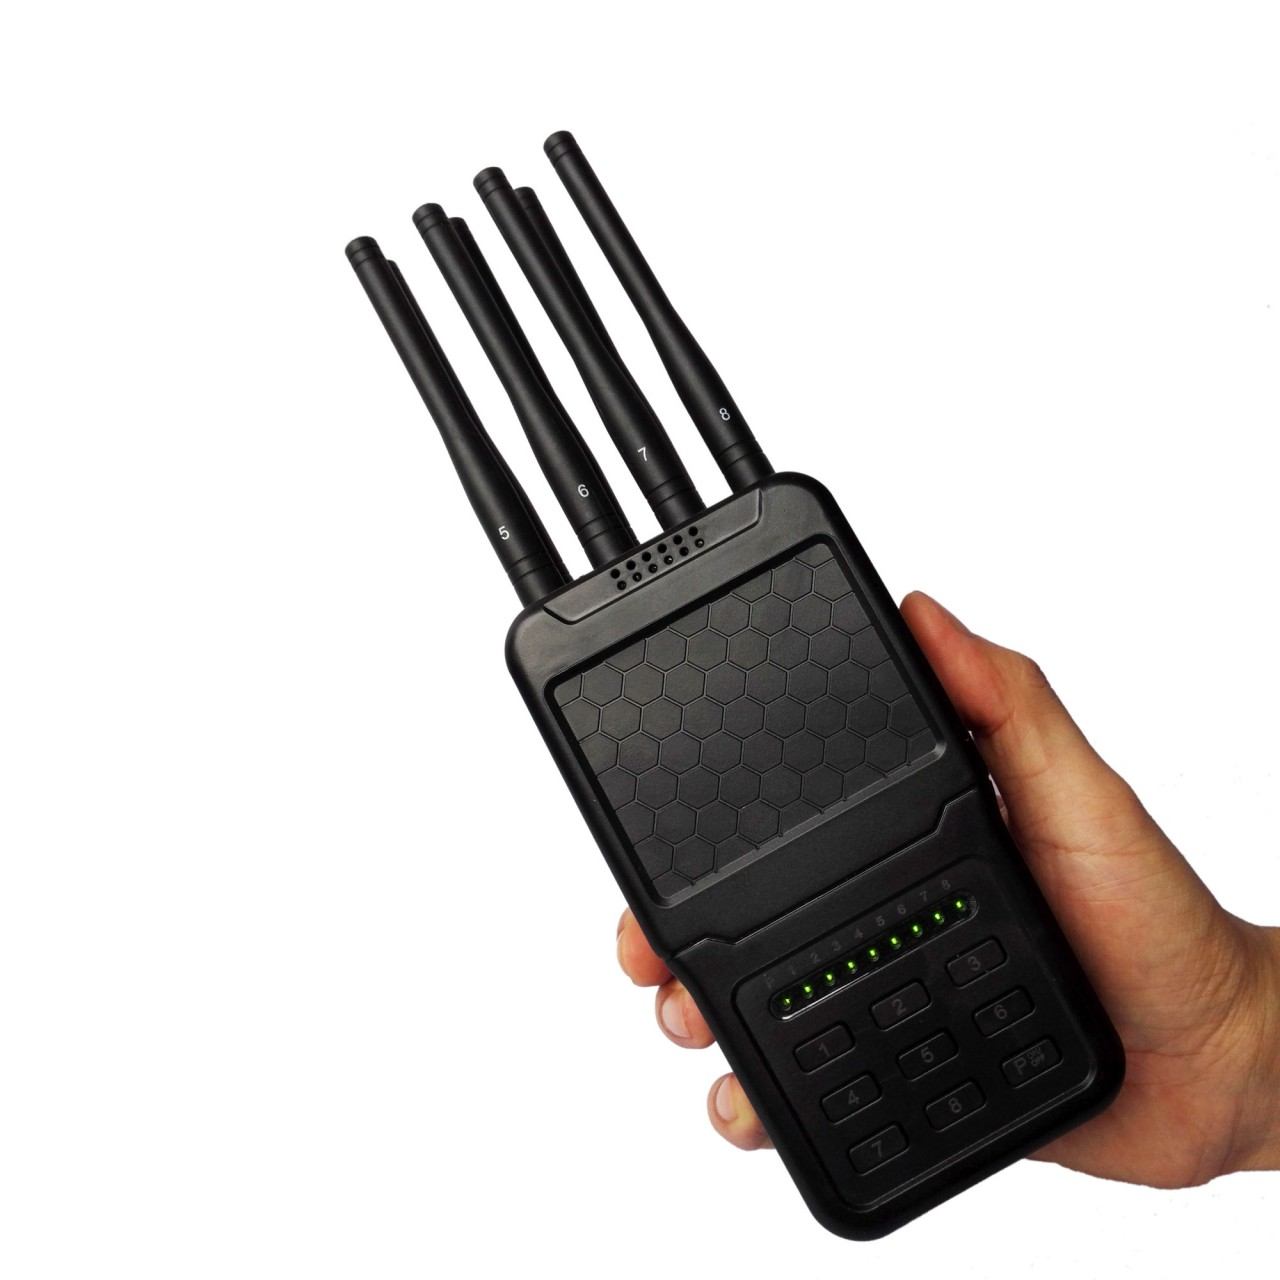 Cell phone jammer 3g and 4g - cell phone jammer ACT